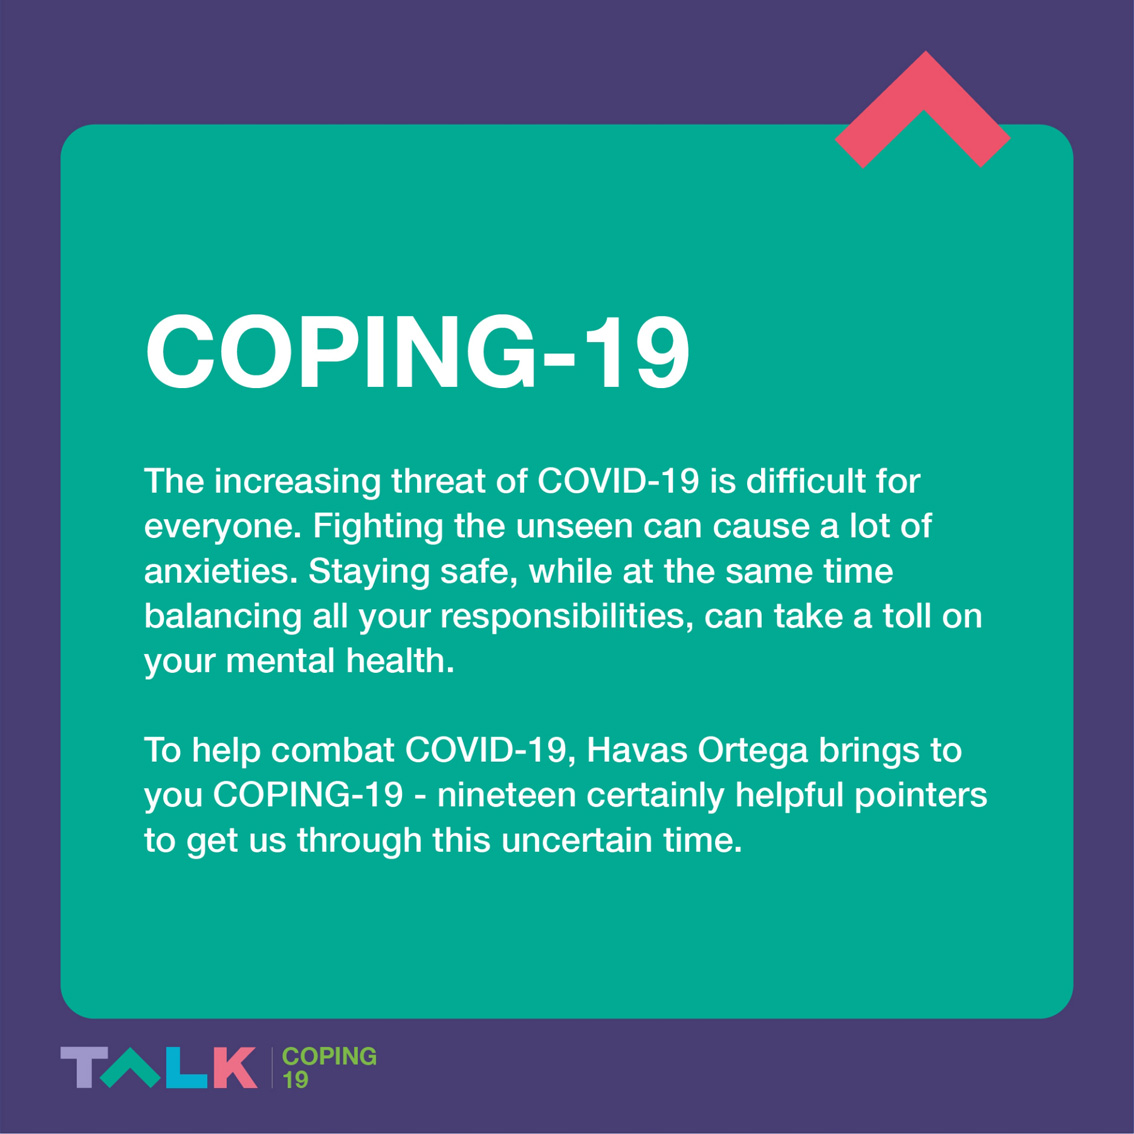 Coping 19 Tips On Dealing With Mental Health During The Crisis